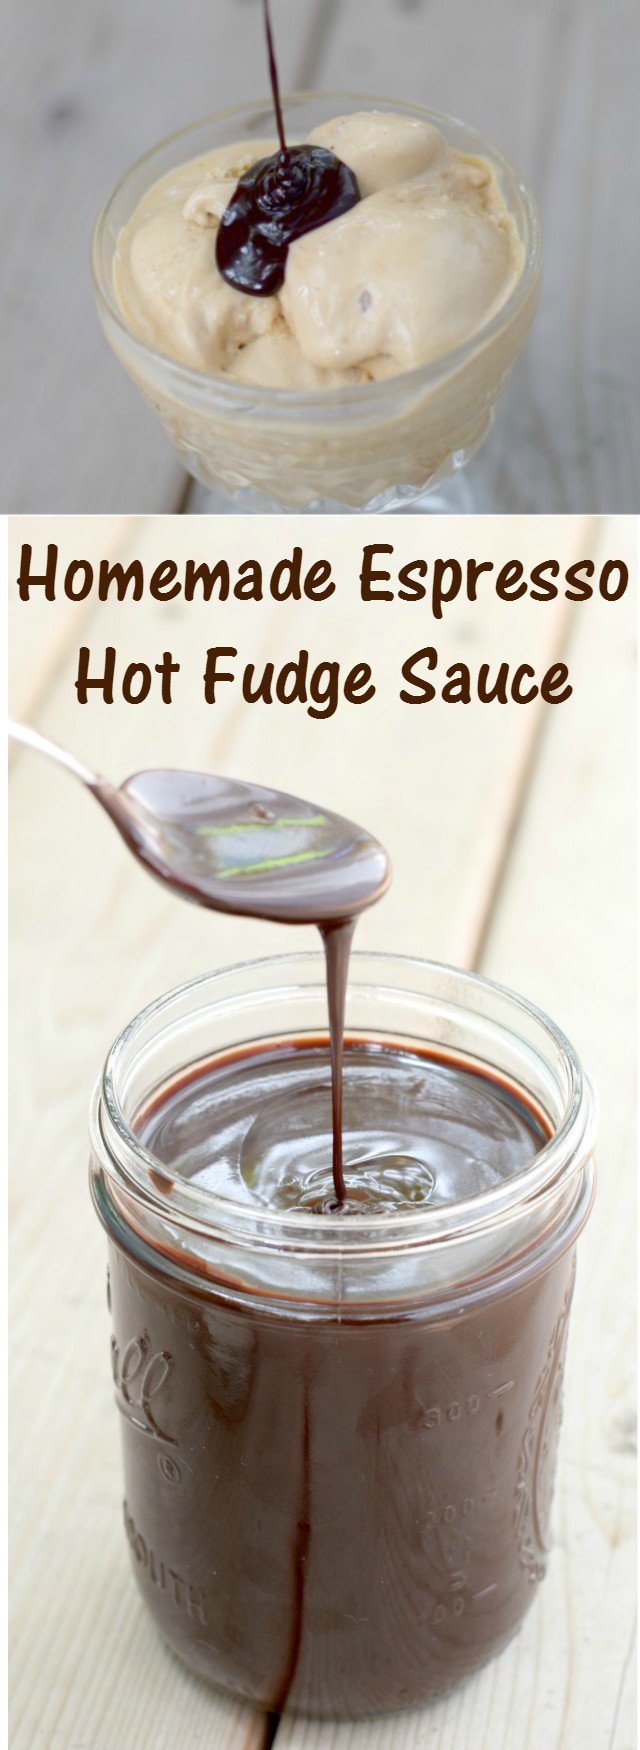 Delicious and easy recipe for a homemade espresso hot fudge sauce. An amazing dessert or ice cream topping, or just eat it from the jar for dessert. Ready in ten minutes!